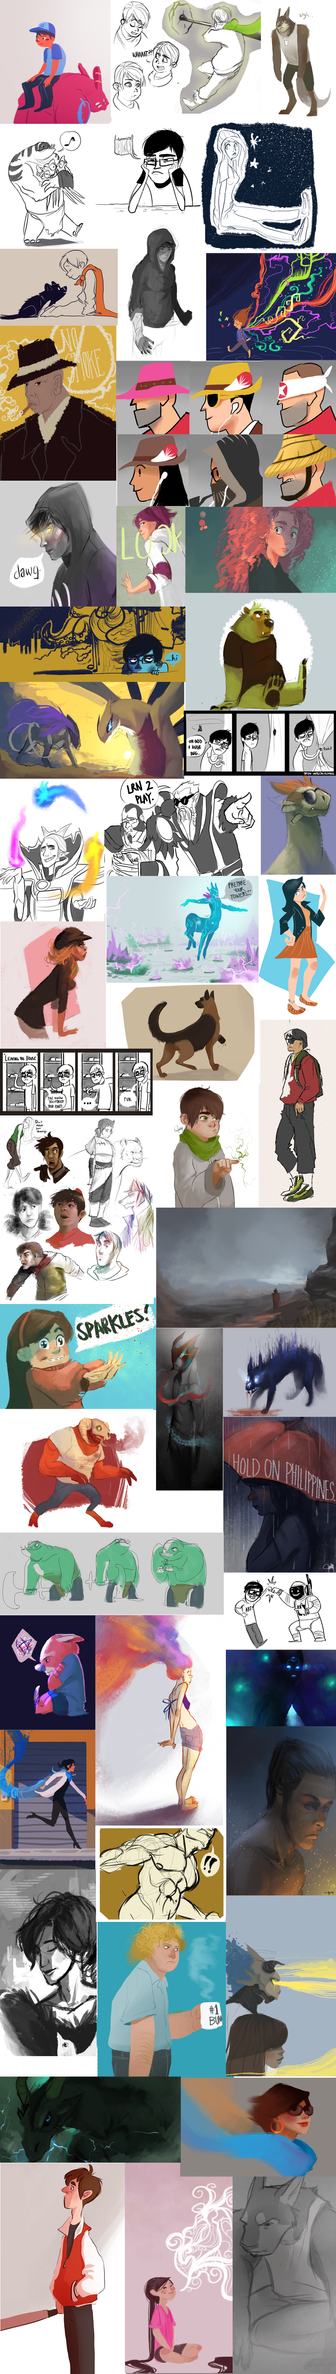 Tumblr Dump 2012 by trisketched